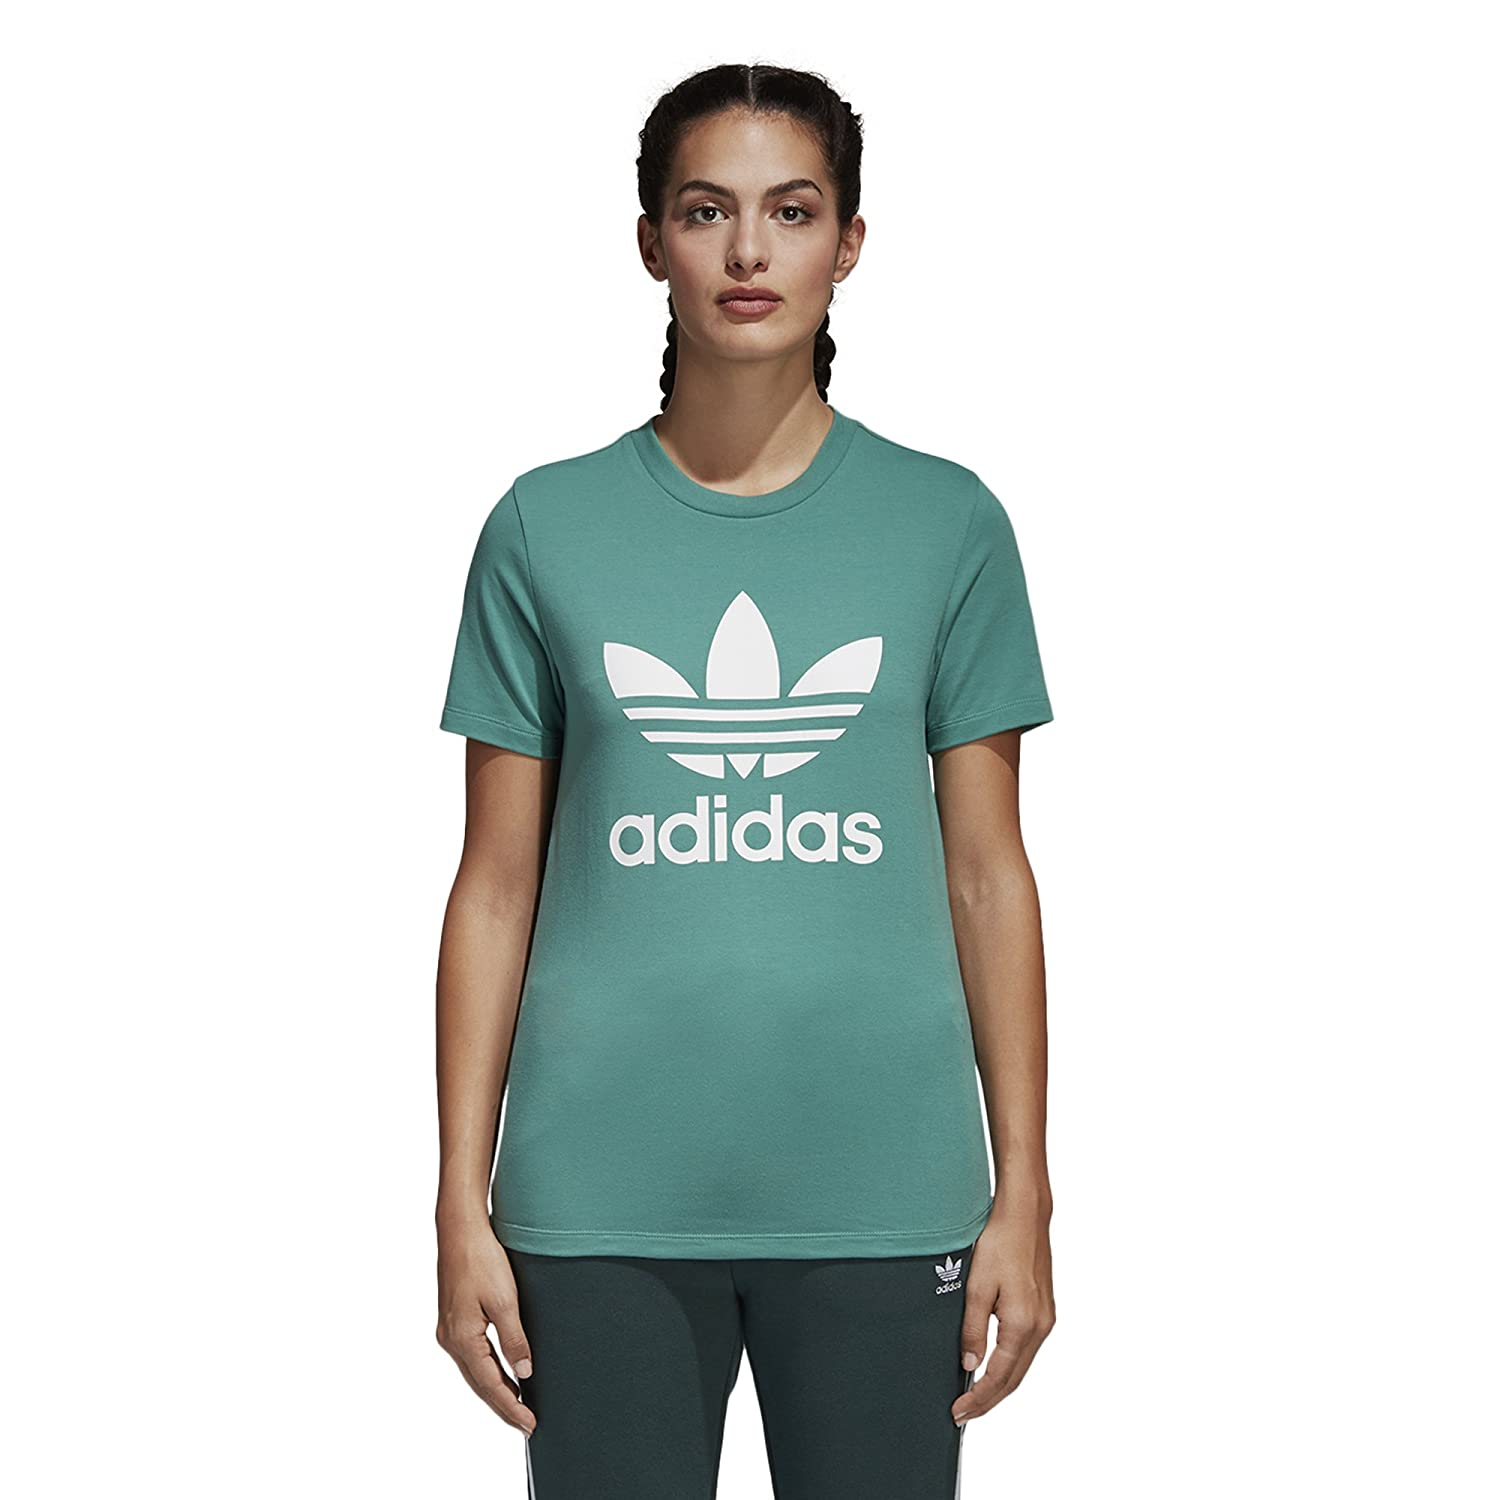 b528d575 adidas Originals Women's Trefoil Tee at Amazon Women's Clothing store: